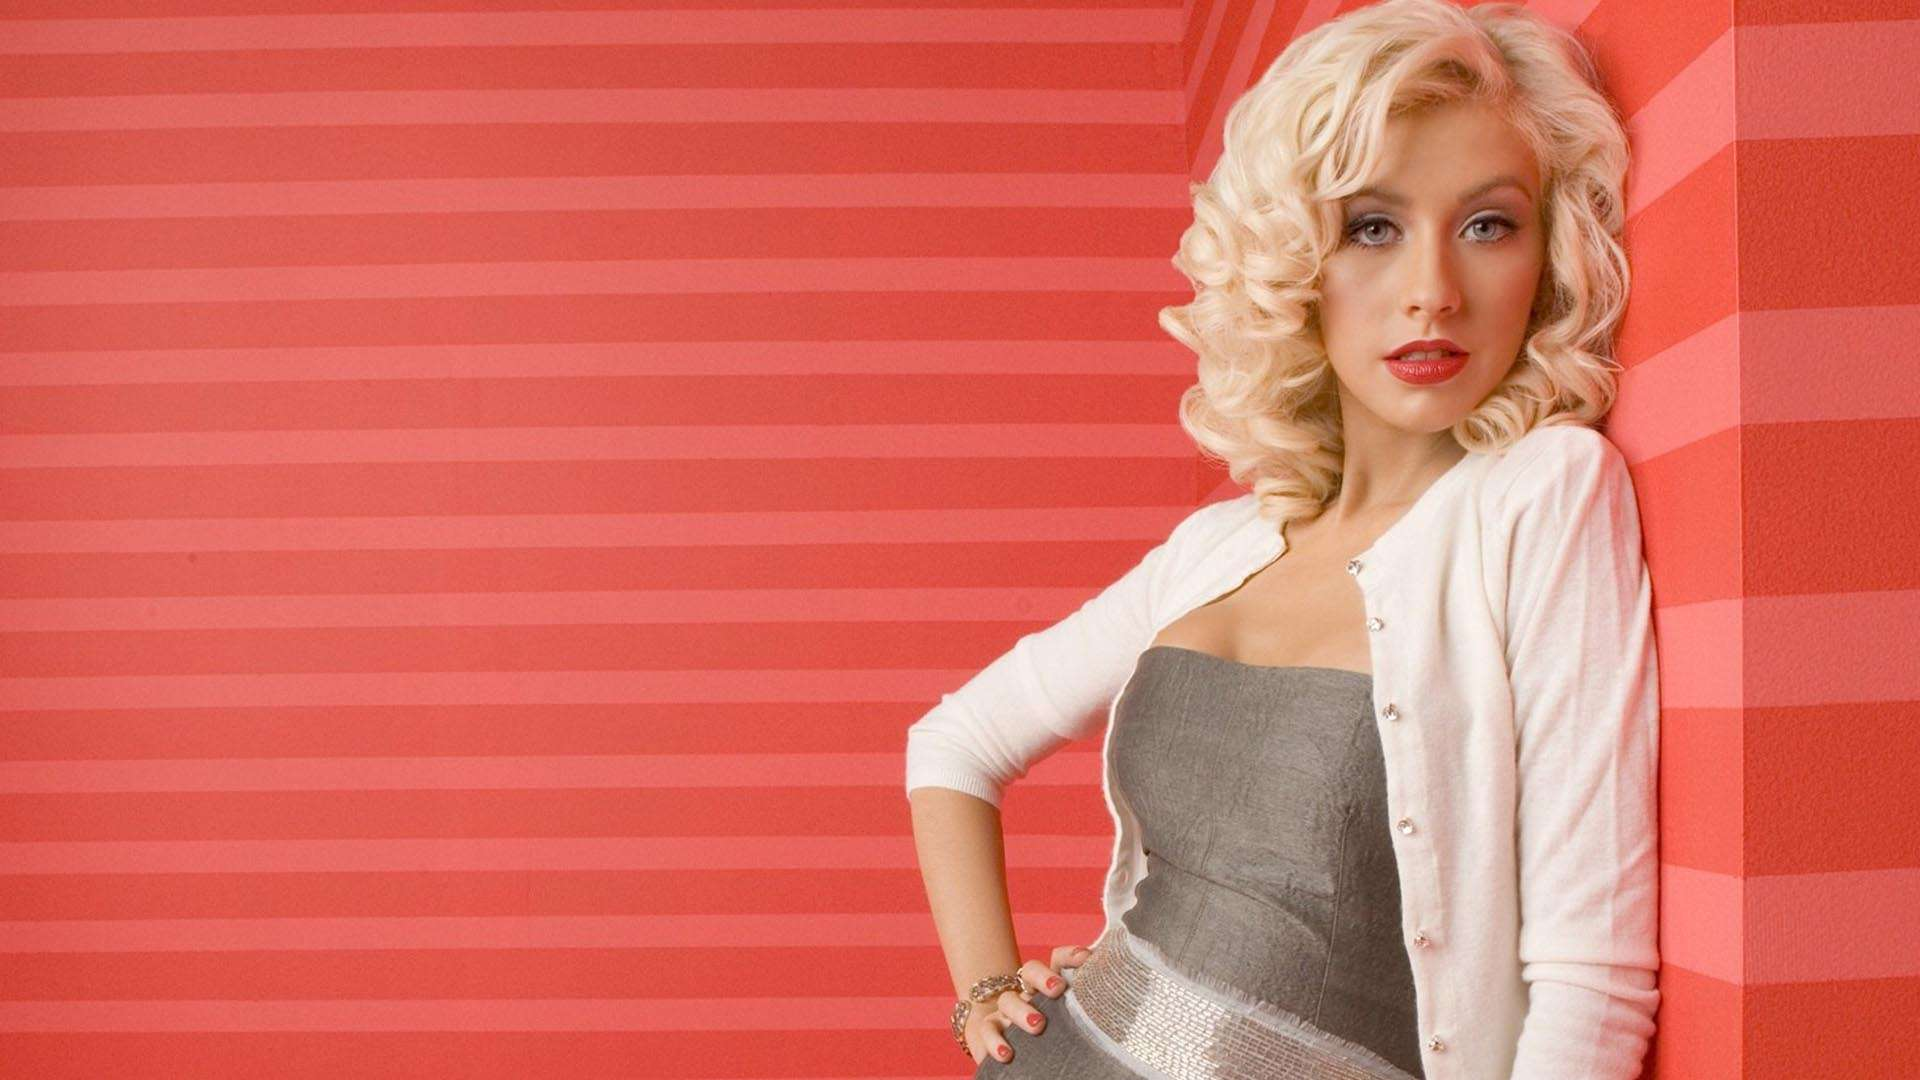 Christina Aguilera Striped Red HD Wallpaper FullHDWpp   Full HD 1920x1080